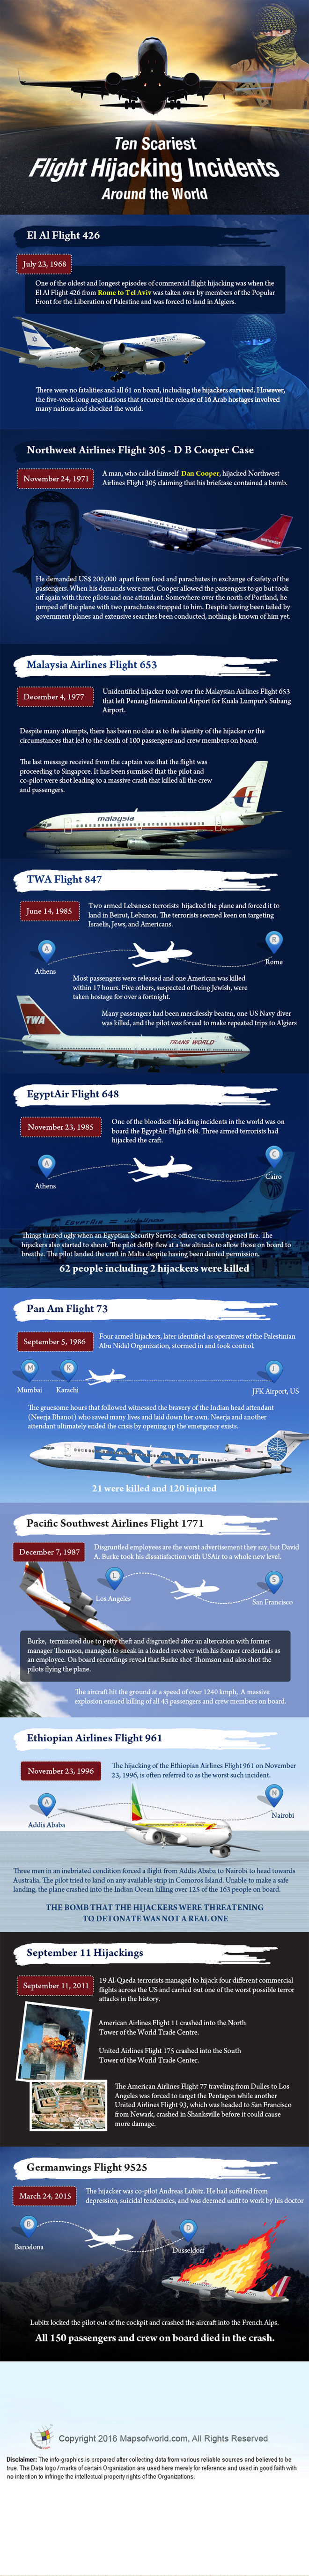 infographics-on-10-shocking-hijacking-incidents-from-across-the-world